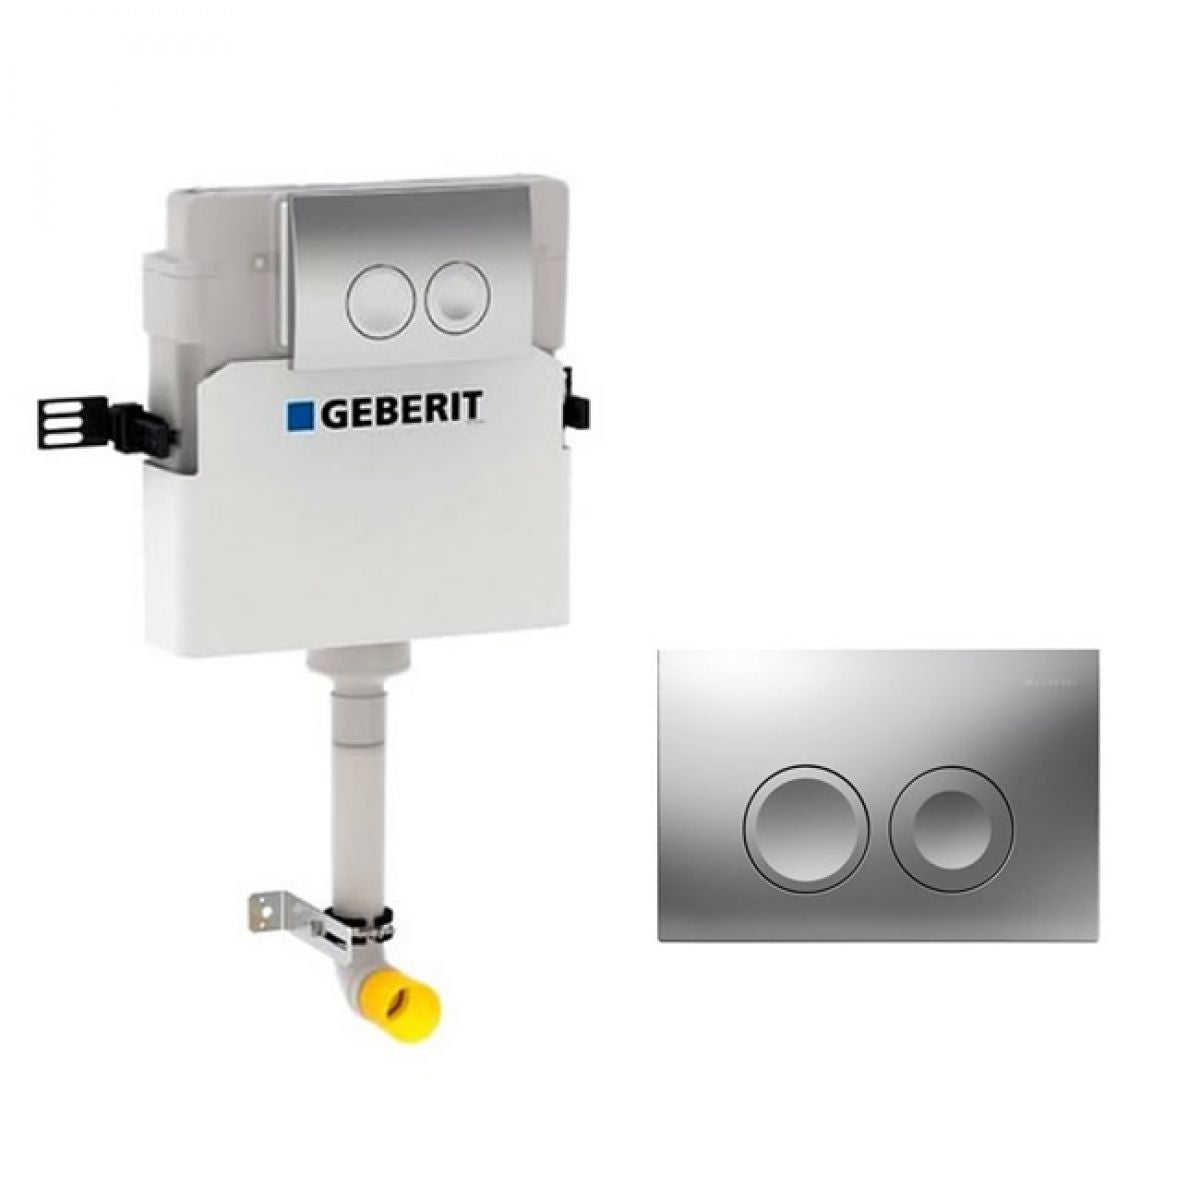 Image of Geberit Duofix Delta 112cm Concealed Cistern with Delta 21 Flush Plate